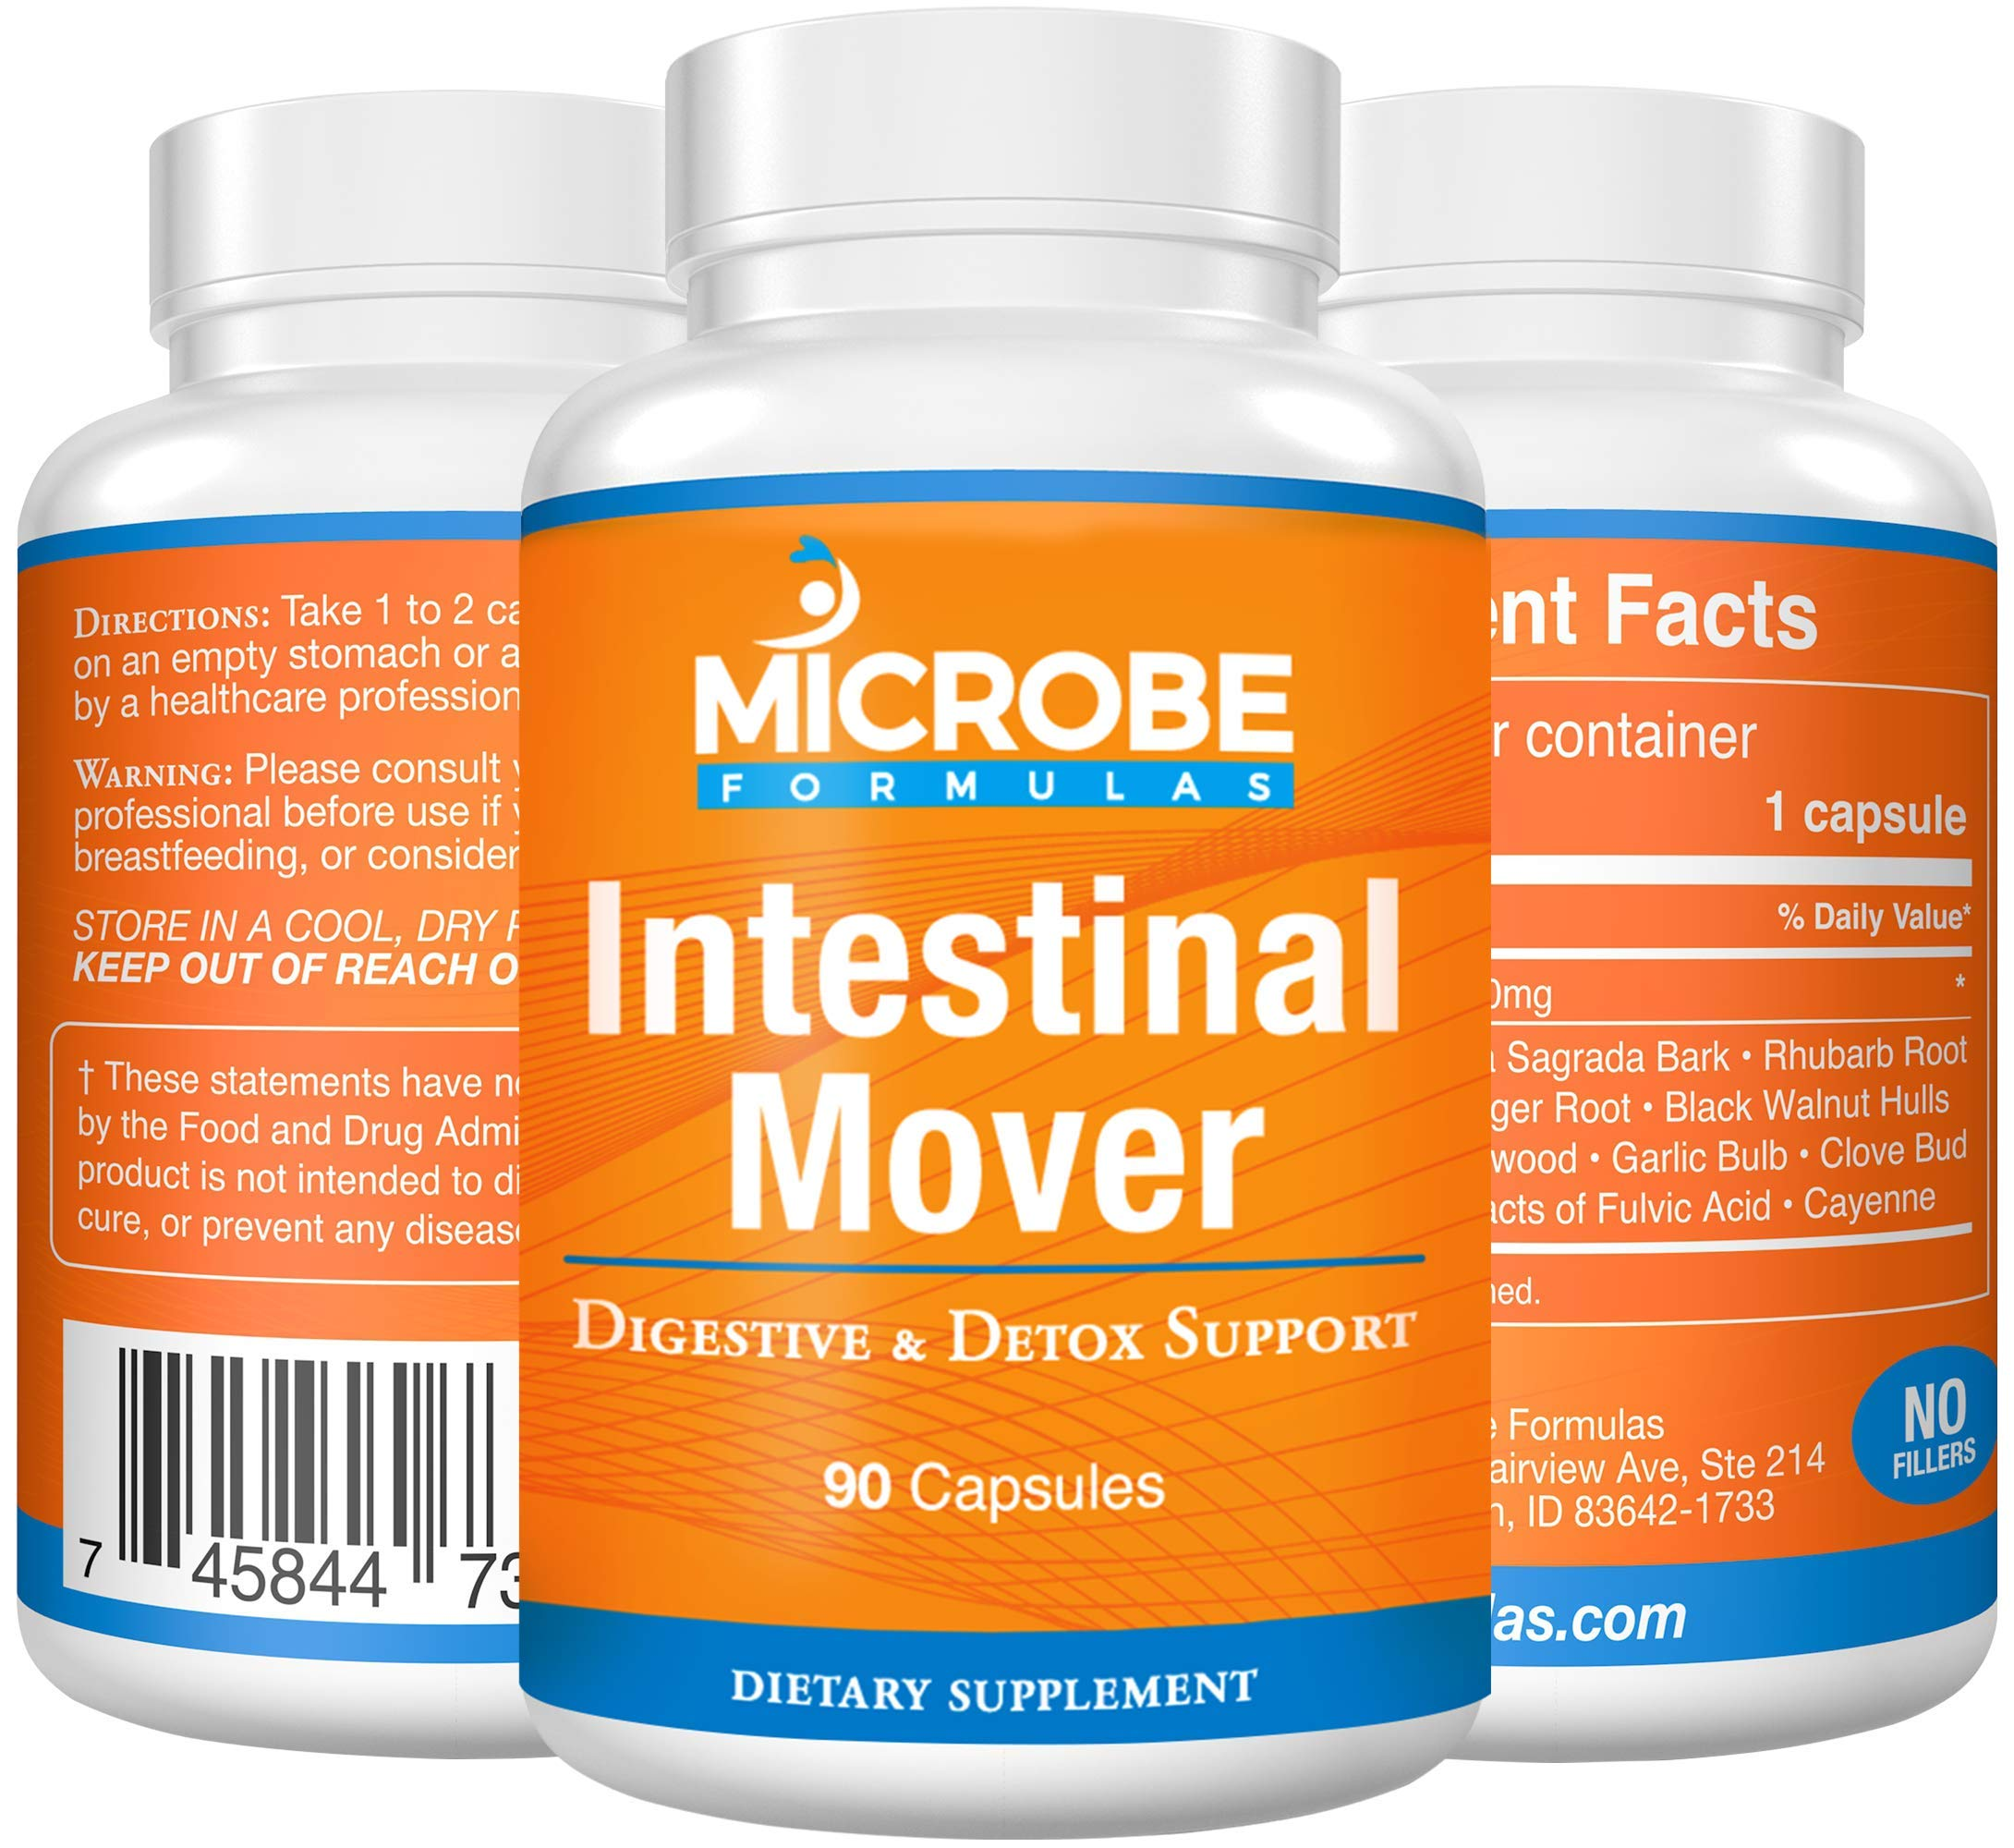 Microbe Formulas: Constipation Relief - Intestinal Mover - 90 Capsules - All Natural Formula - Offers Digestive Detox Support, Provides Gentle Constipation Relief, Promotes Proper Bowel Function